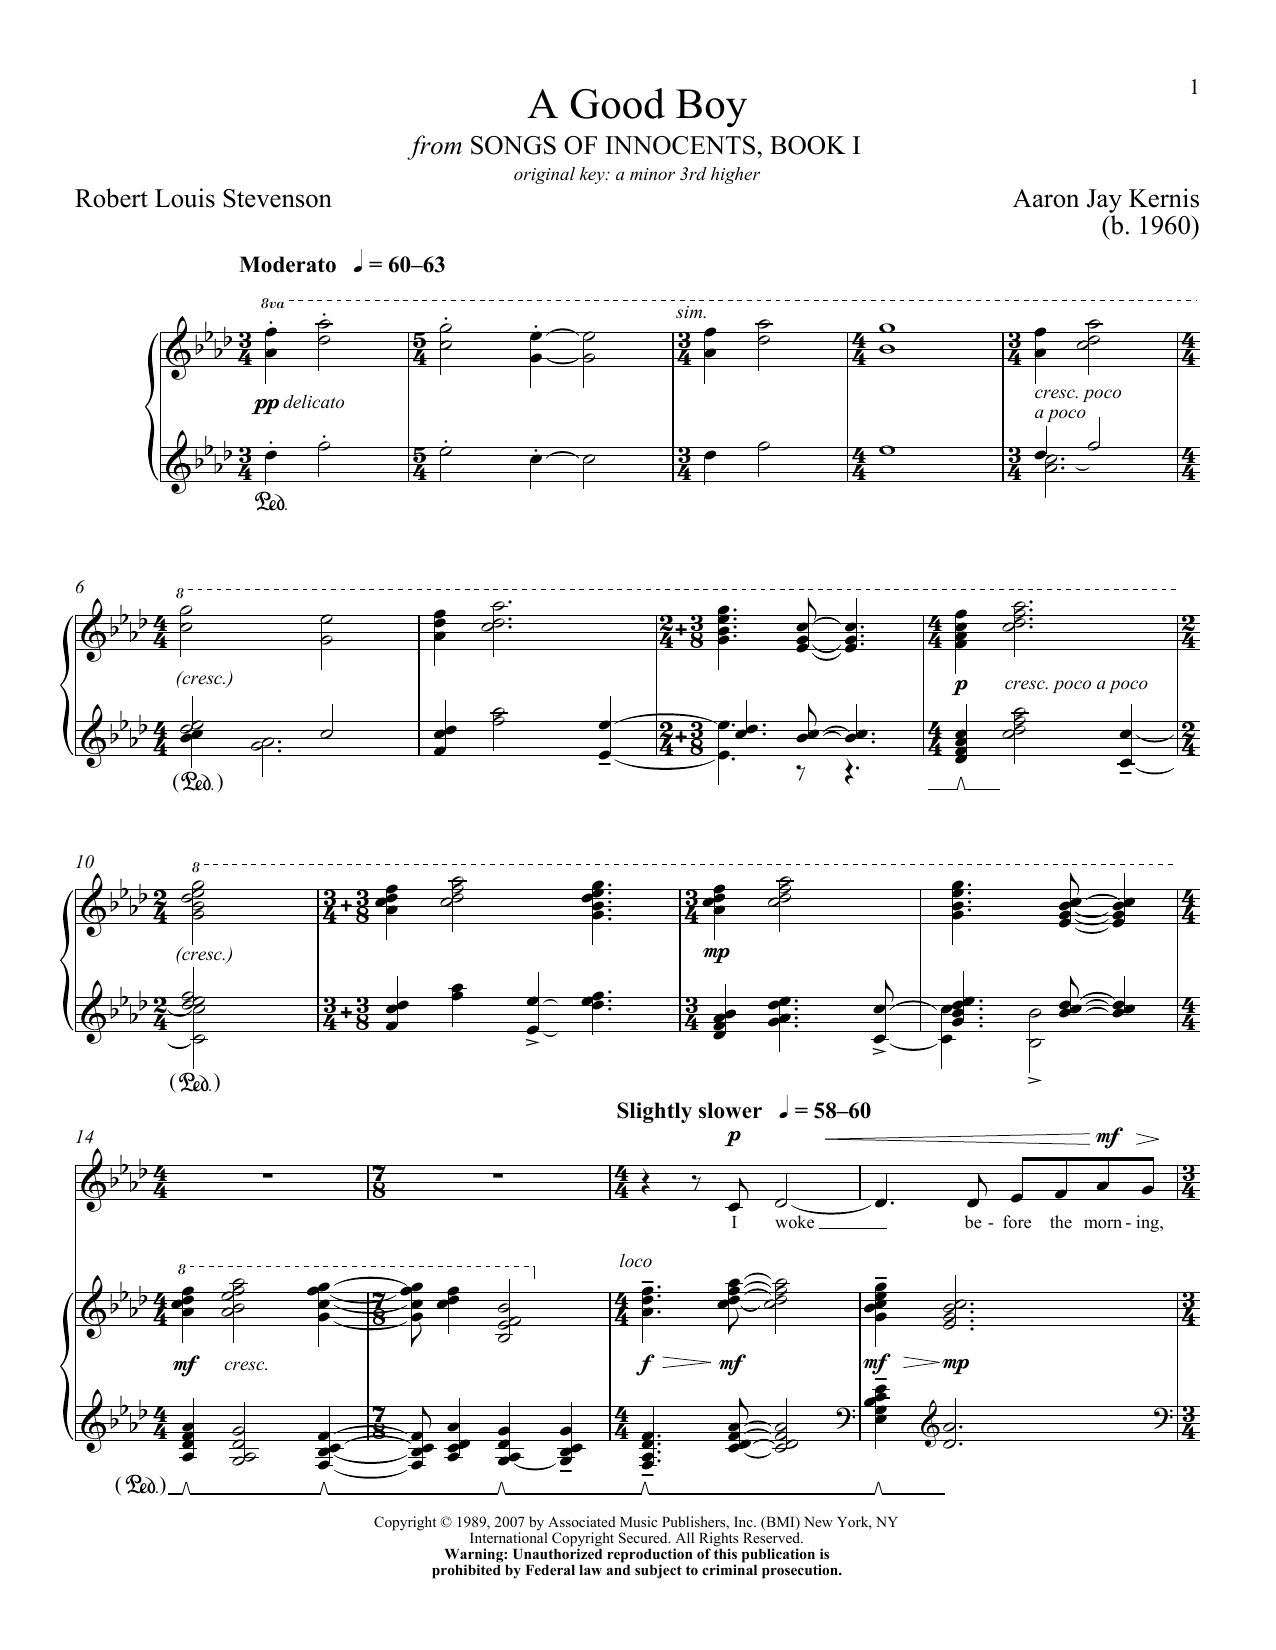 Download Aaron Jay Kernis 'A Good Boy' Digital Sheet Music Notes & Chords and start playing in minutes